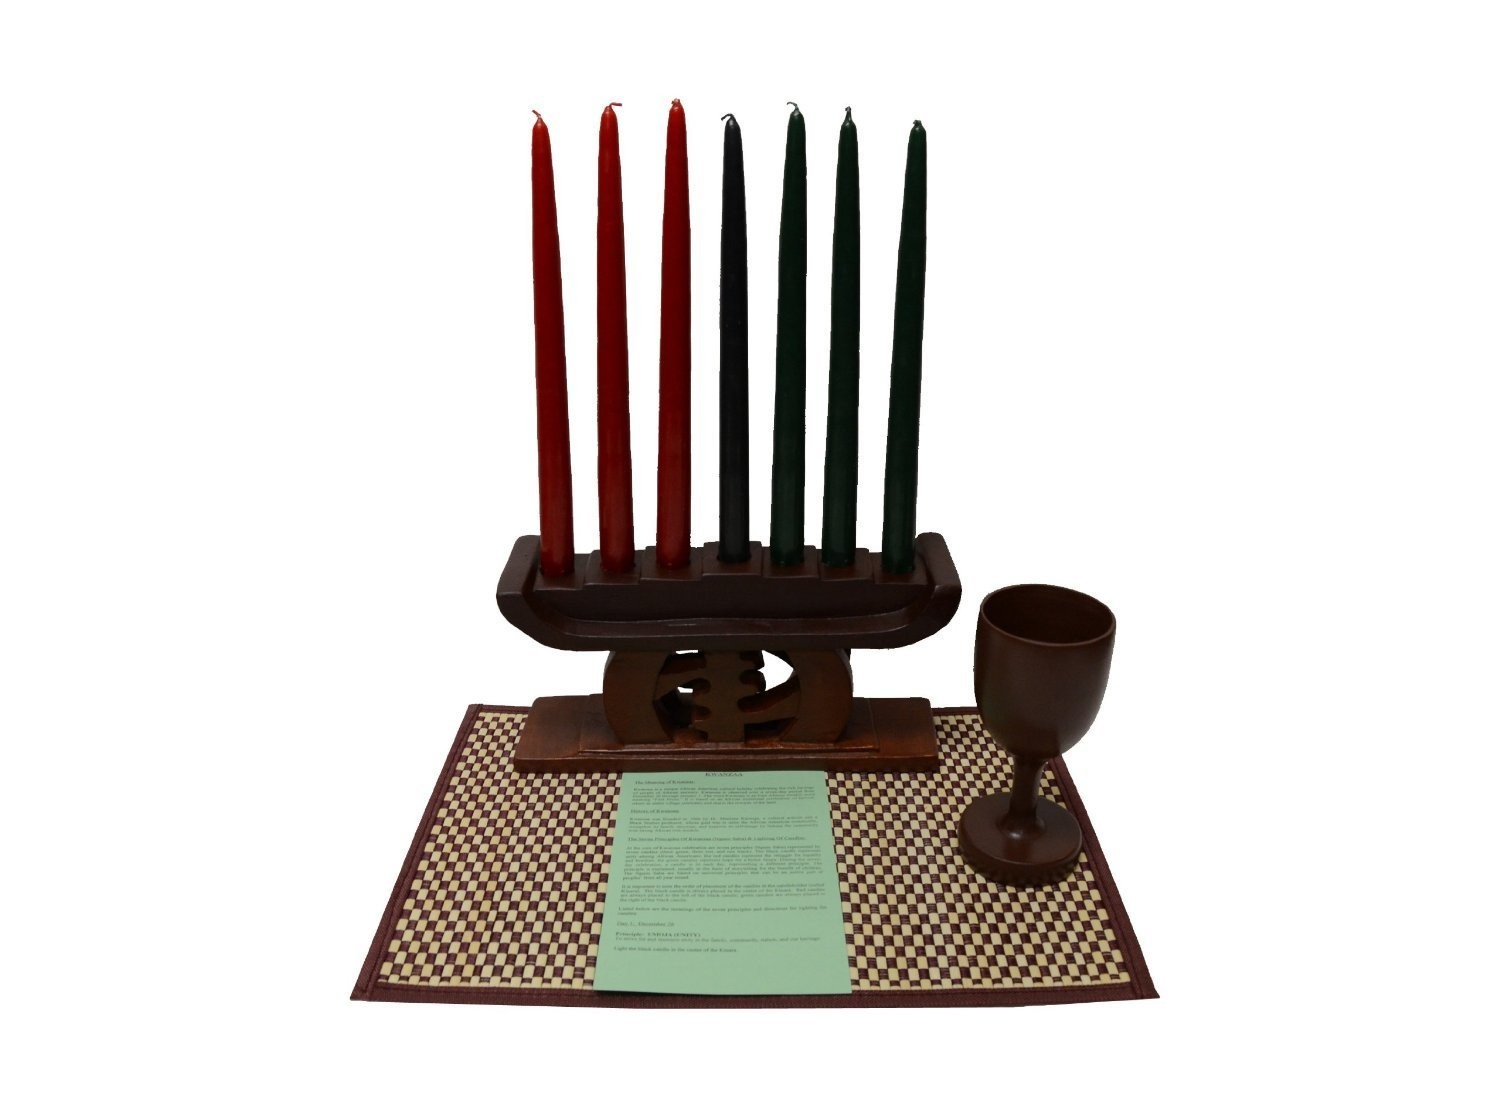 Kwanzaa Gye Nyame Candleholder & Celebration Set (Brown) - Handmade in Ghana